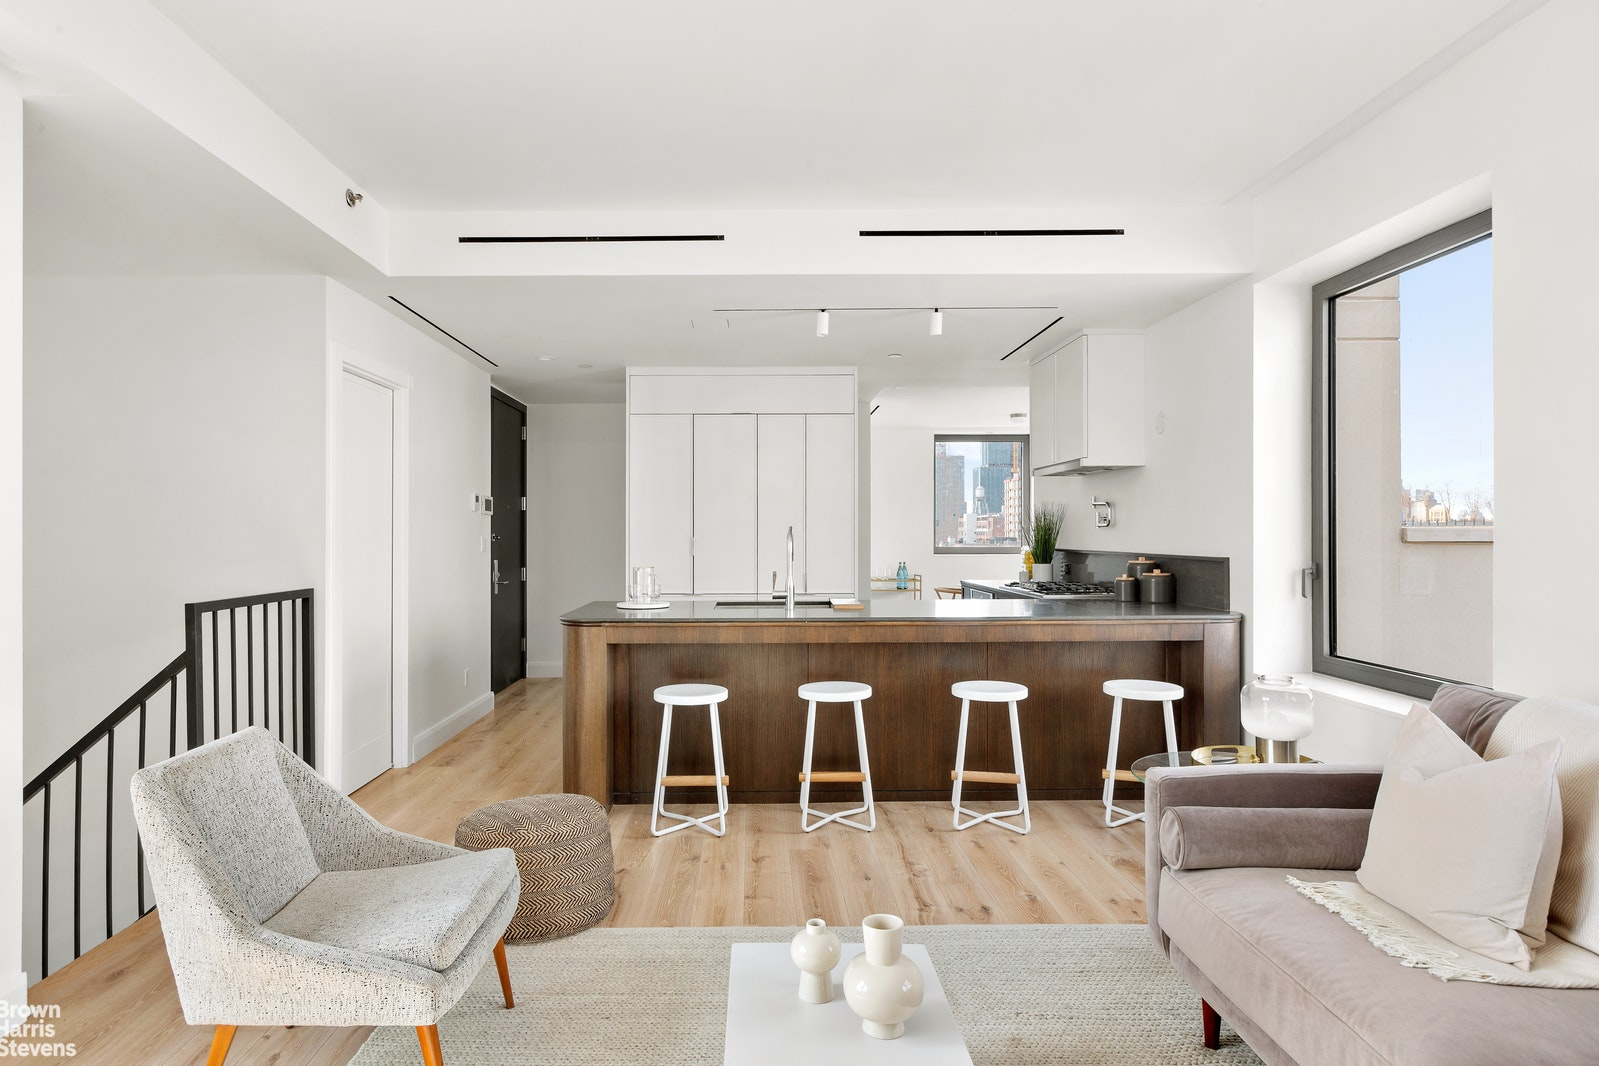 653 Bergen St Ph, Prospect Heights, Brooklyn, NY, 11238, $2,995,000, Property For Sale, Halstead Real Estate, Photo 2